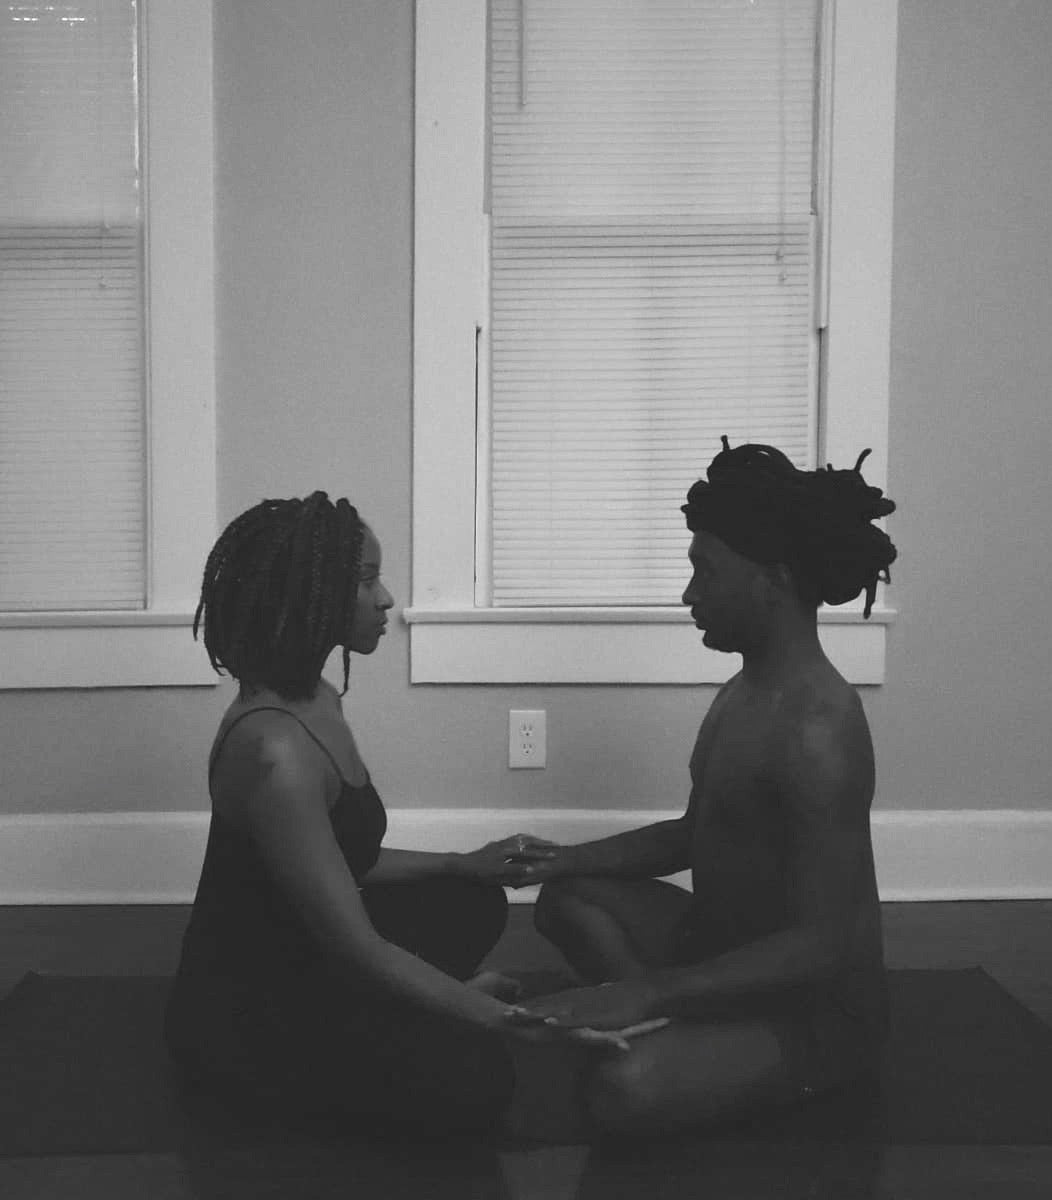 6 Reasons To Practice Yoga With Your Partner